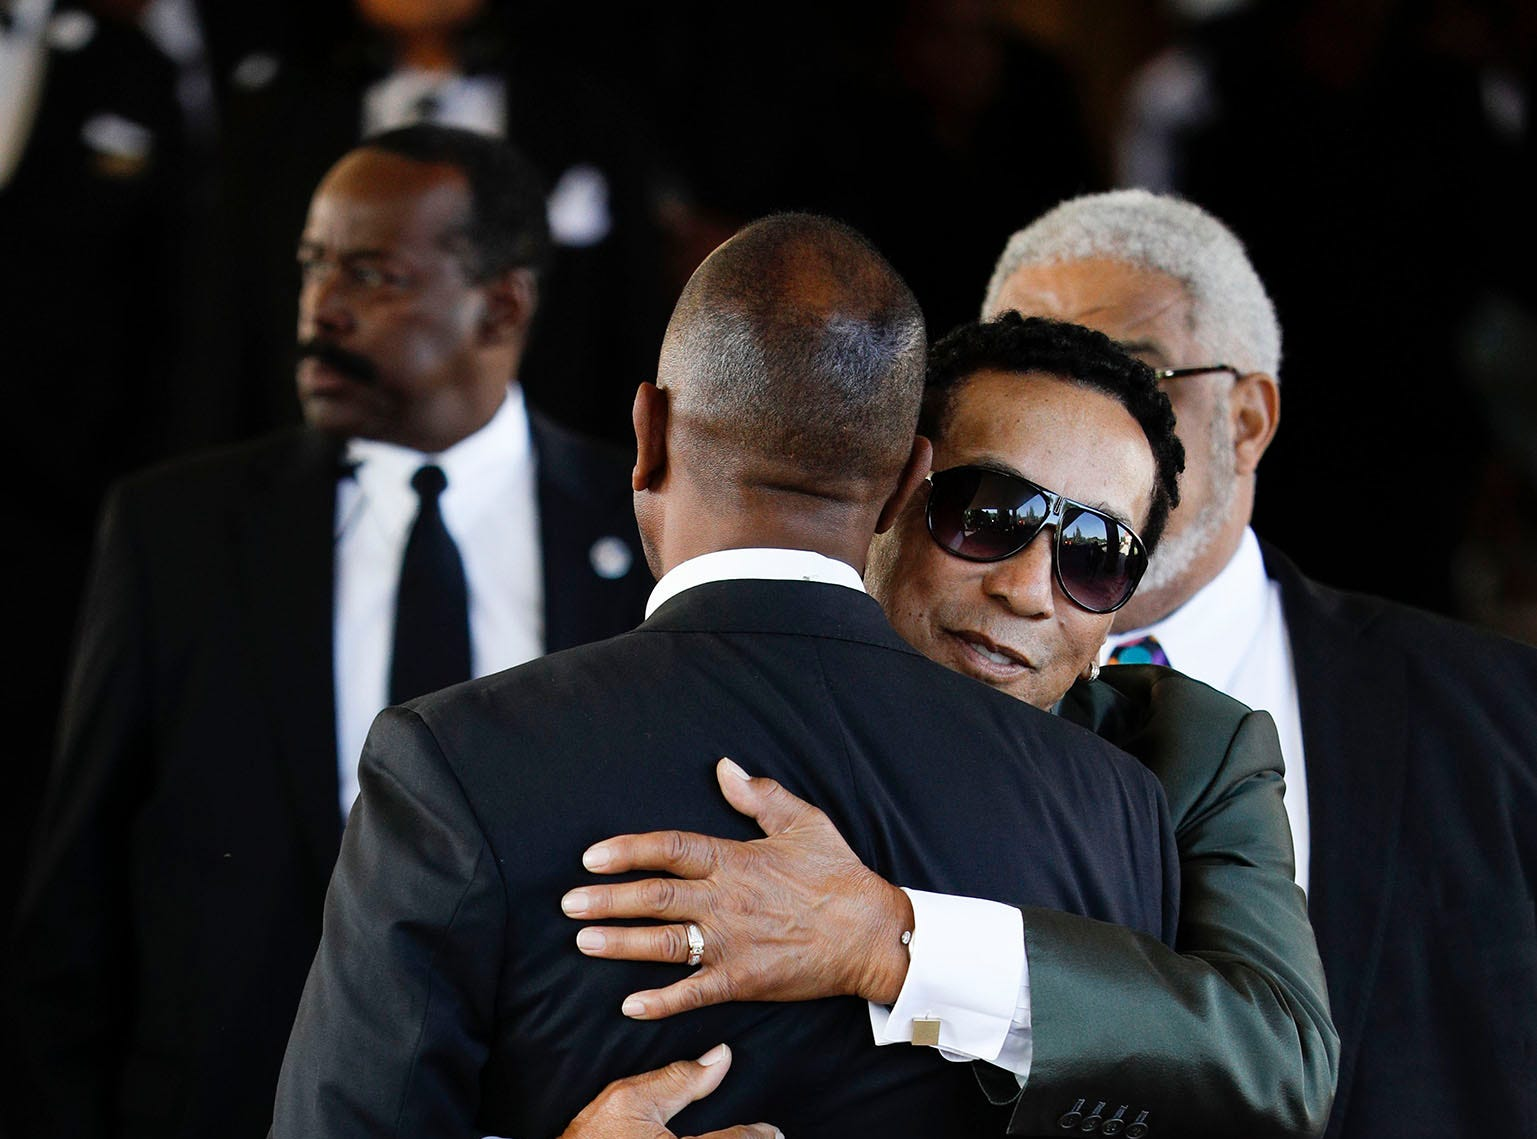 DETROIT, MI - AUGUST 31:  Smokey Robinson gives someone a hug as he enters Greater Grace Temple to attend soul music icon Aretha Franklin's funeral on August 31, 2018 in Detroit, Michigan. Dozens of musicians and dignitaries are scheduled to either speak or perform at the singer's funeral, including former President Bill Clinton, Stevie Wonder, Faith Hill, Ariana Grande, Chaka Khan, Smokey Robinson, Jennifer Hudson, and Cicely Tyson. (Photo by Bill Pugliano/Getty Images) ORG XMIT: 775217543 ORIG FILE ID: 1025523346